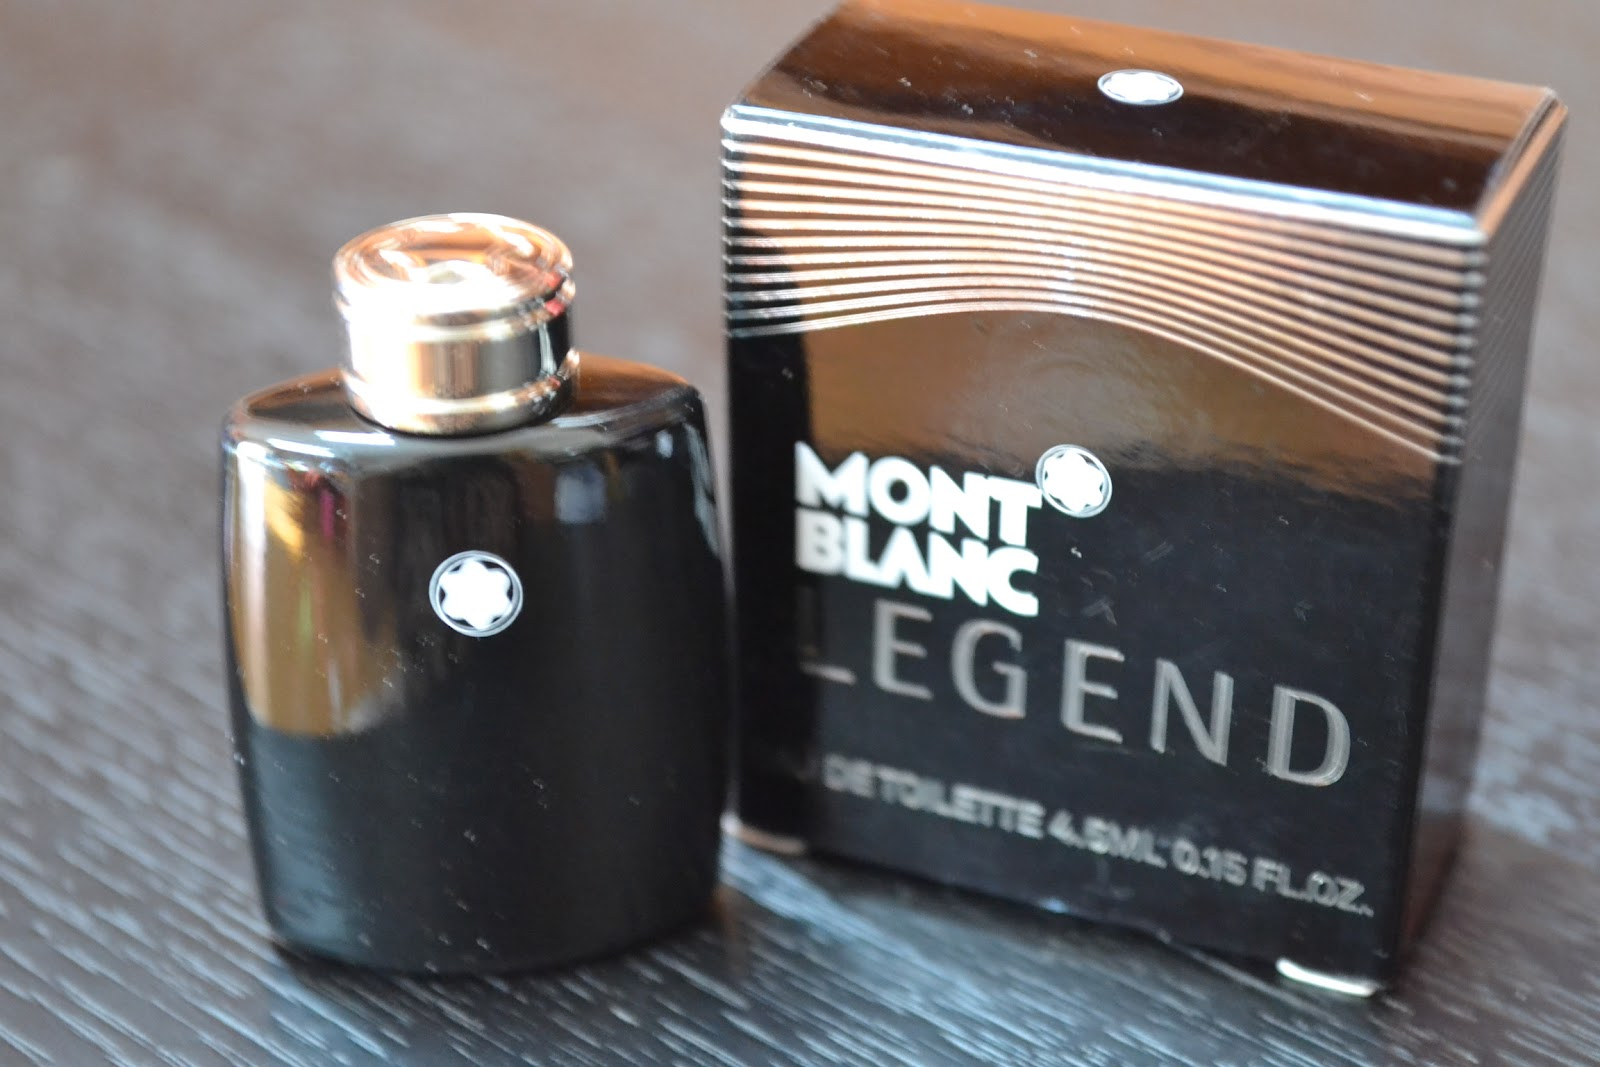 Mont Blanc Legend Edt 5ml Be The Is Dedicated To Inspiring Virtuous And Self Confident Men Who Are Courageous Passionate Authentic Their Fragrance Subtle But Striking